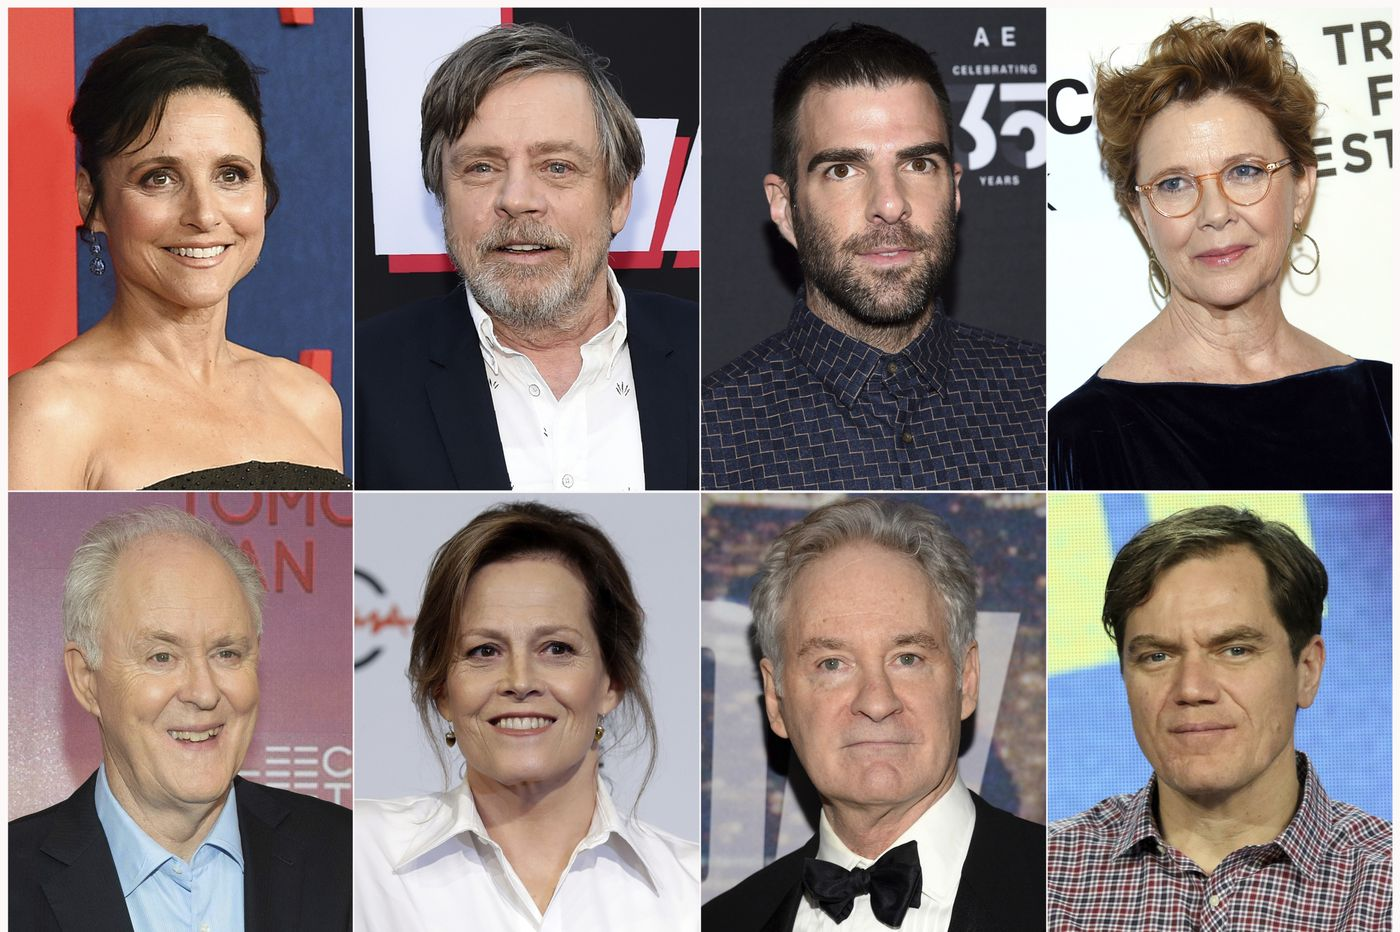 Lithgow, Bening, and more stars perform Mueller report